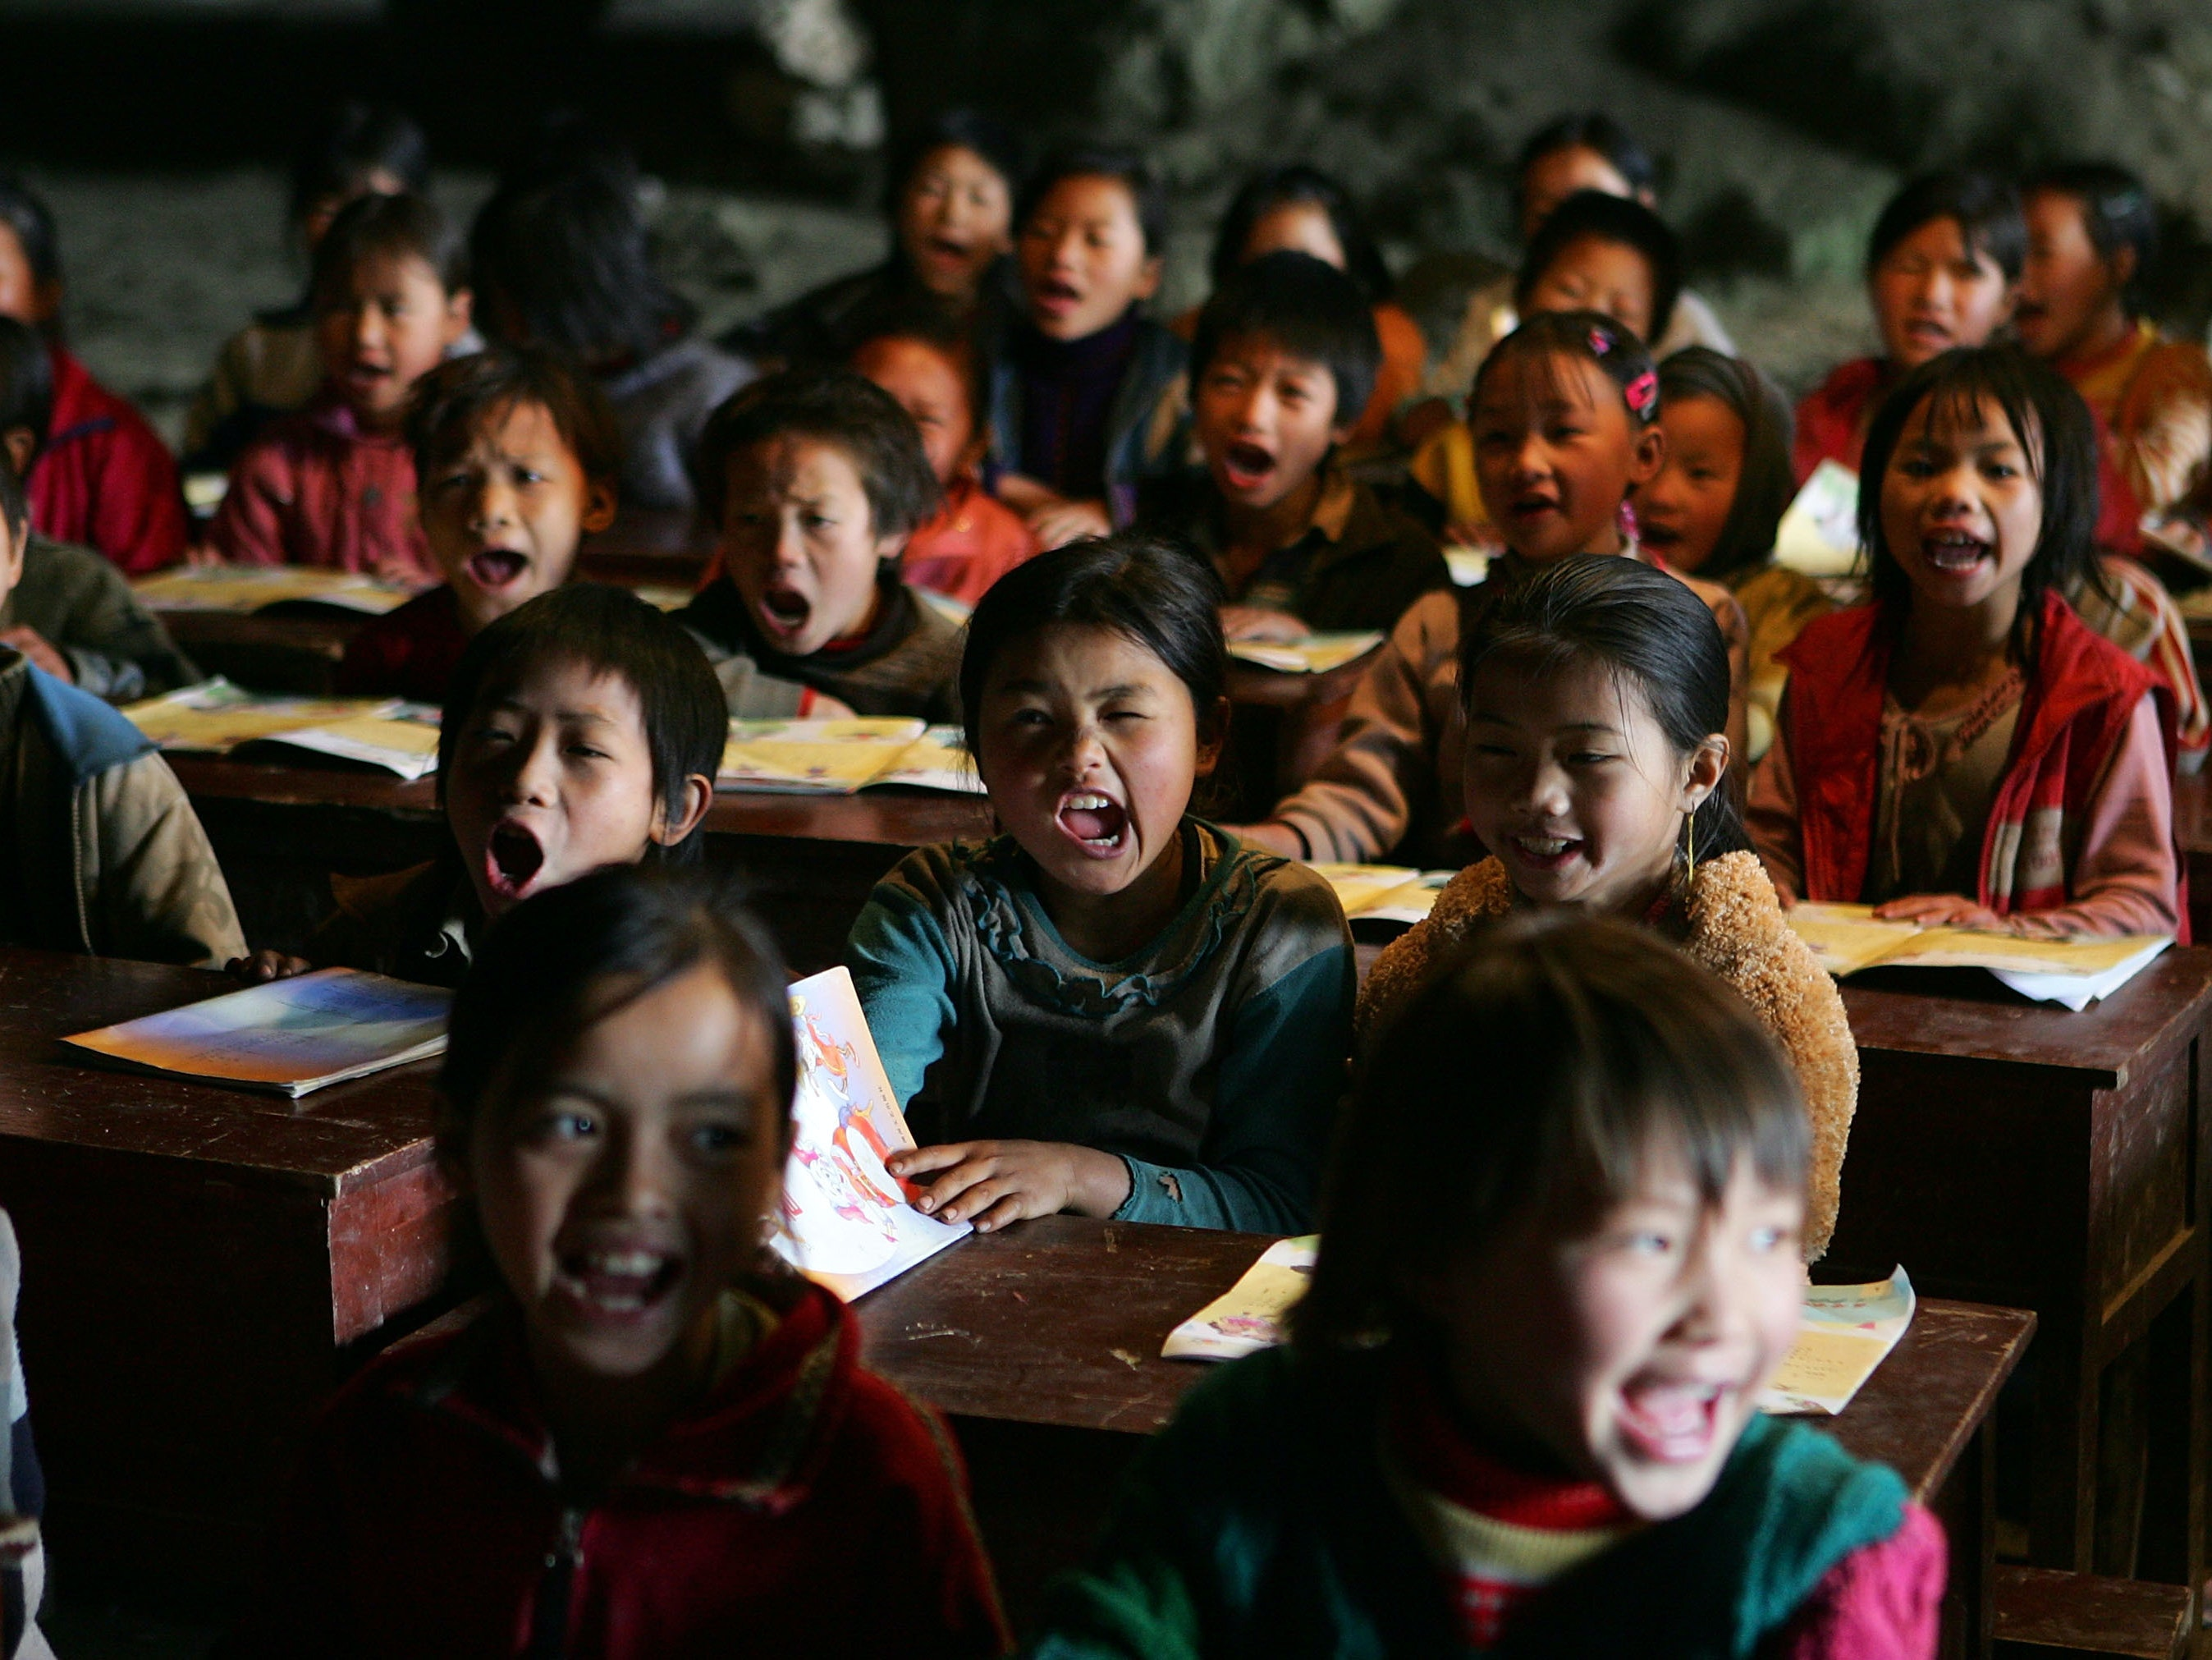 ZIYANG COUNTY, CHINA - MARCH 16:  Children learn a song in music class at their school in a huge cave at a remote Miao village March 16, 2007 in Ziyun county, Guizhou province of southwest China. The Middle Cave elementary school, which has 194 students in five classes, was built inside the natural cave 20 years ago by 16 Miao families who have lived there for more than half a century. Most of the students must walk for one to three hours on a stone path to get the school every morning.  (Photo by Cancan Chu/Getty Images)